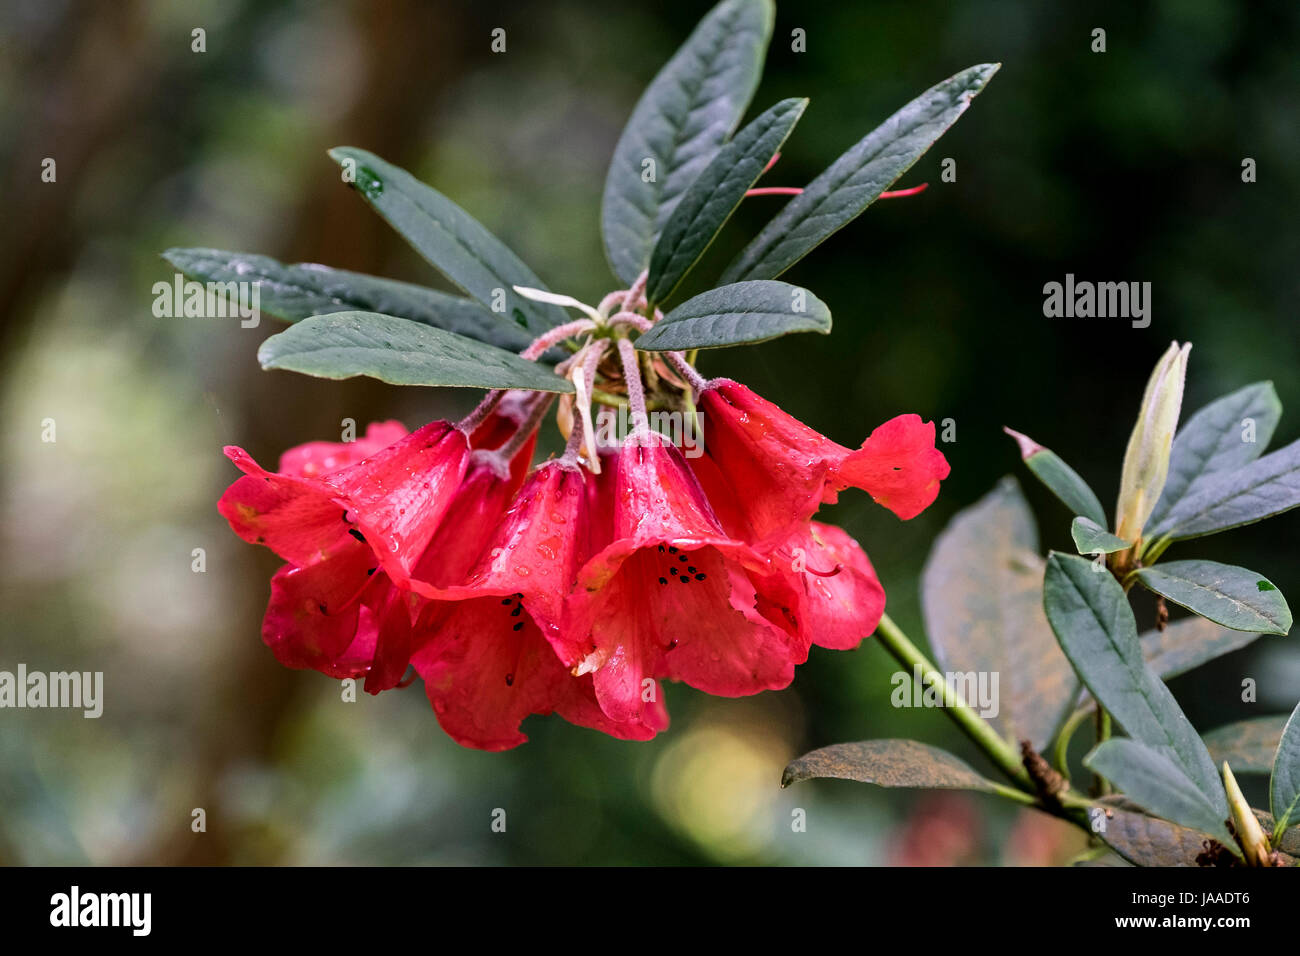 A closeup view of the flowers of a Rhododendron elegantum plant. - Stock Image